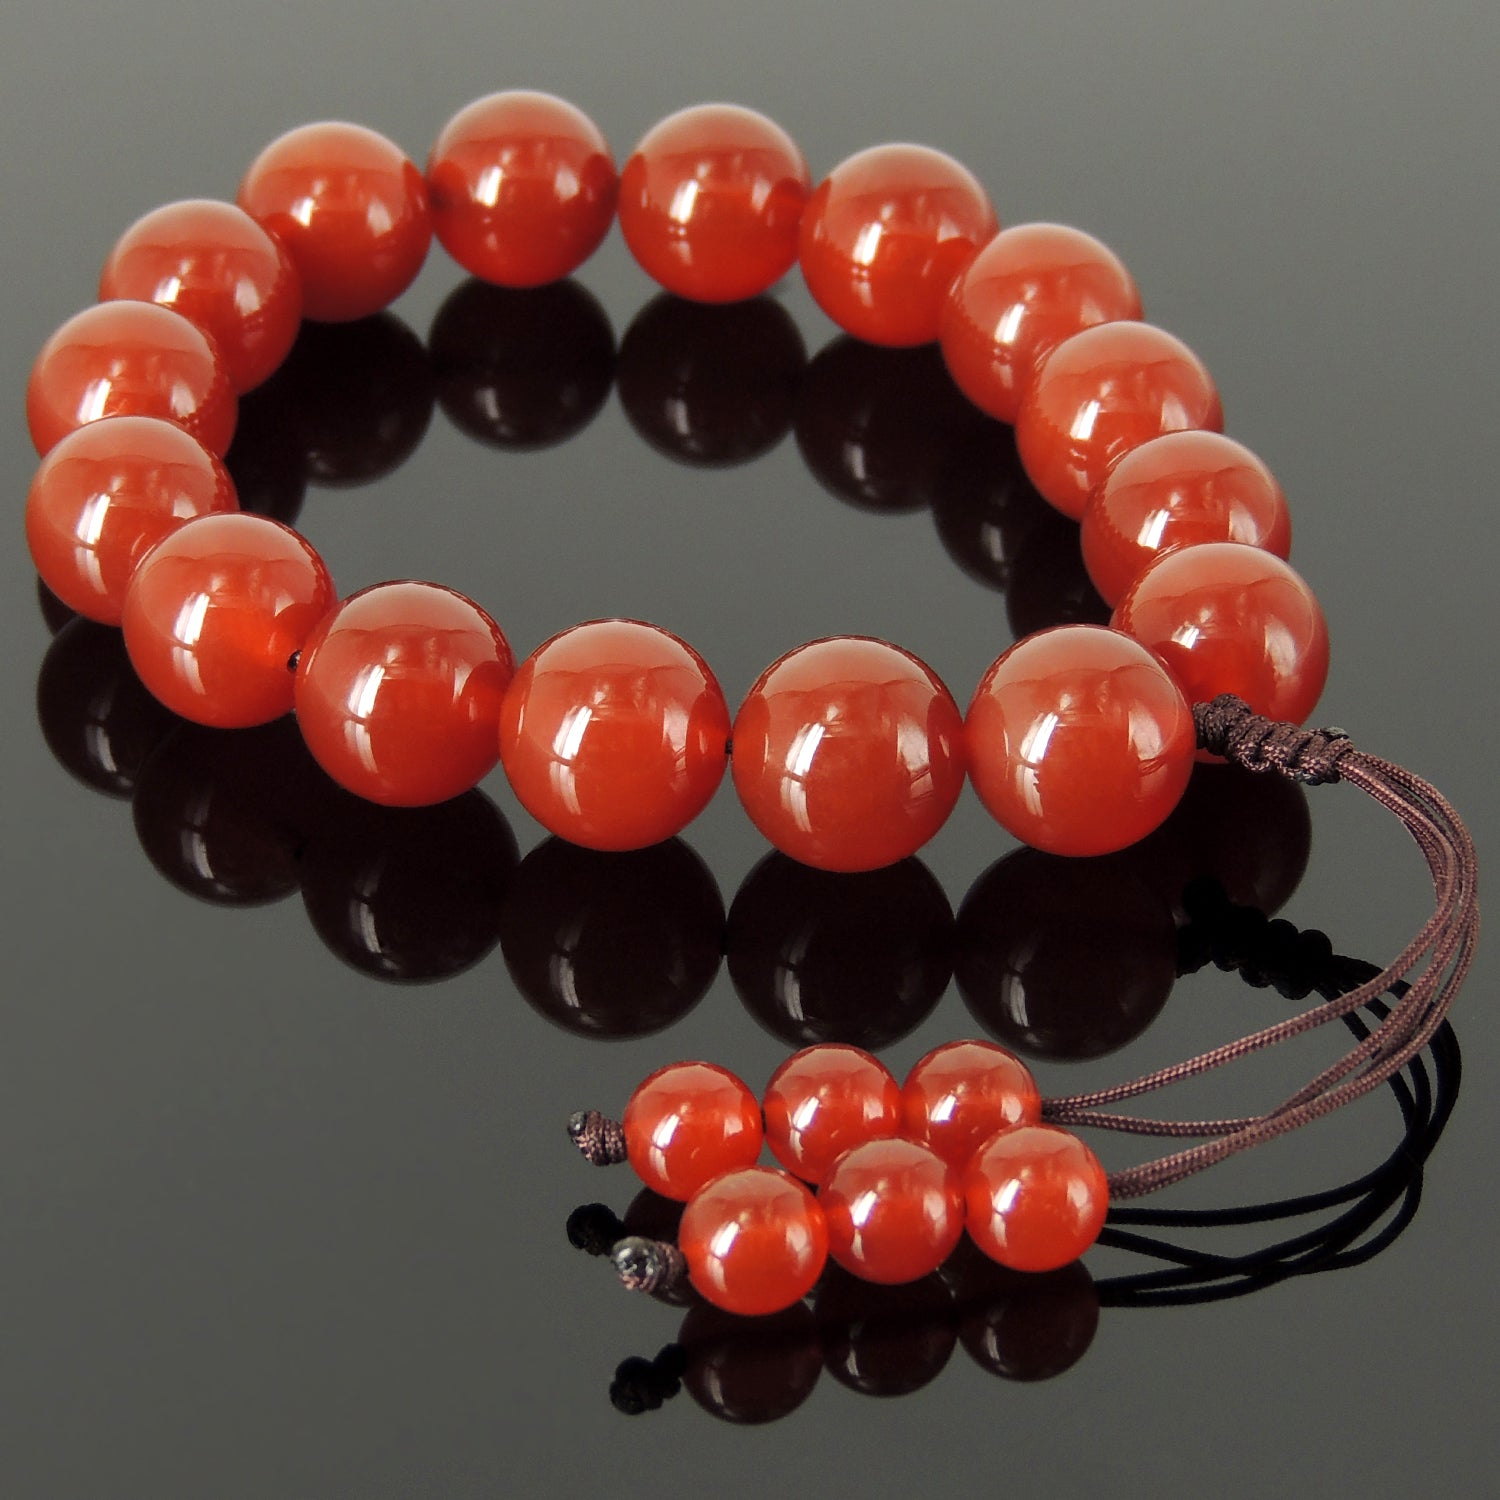 Handmade Adjustable Braided Cords, Healing 14mm Red Agate Meditation Beads, Natural Gemstones - Men's Women's Protection & Compassion HL004